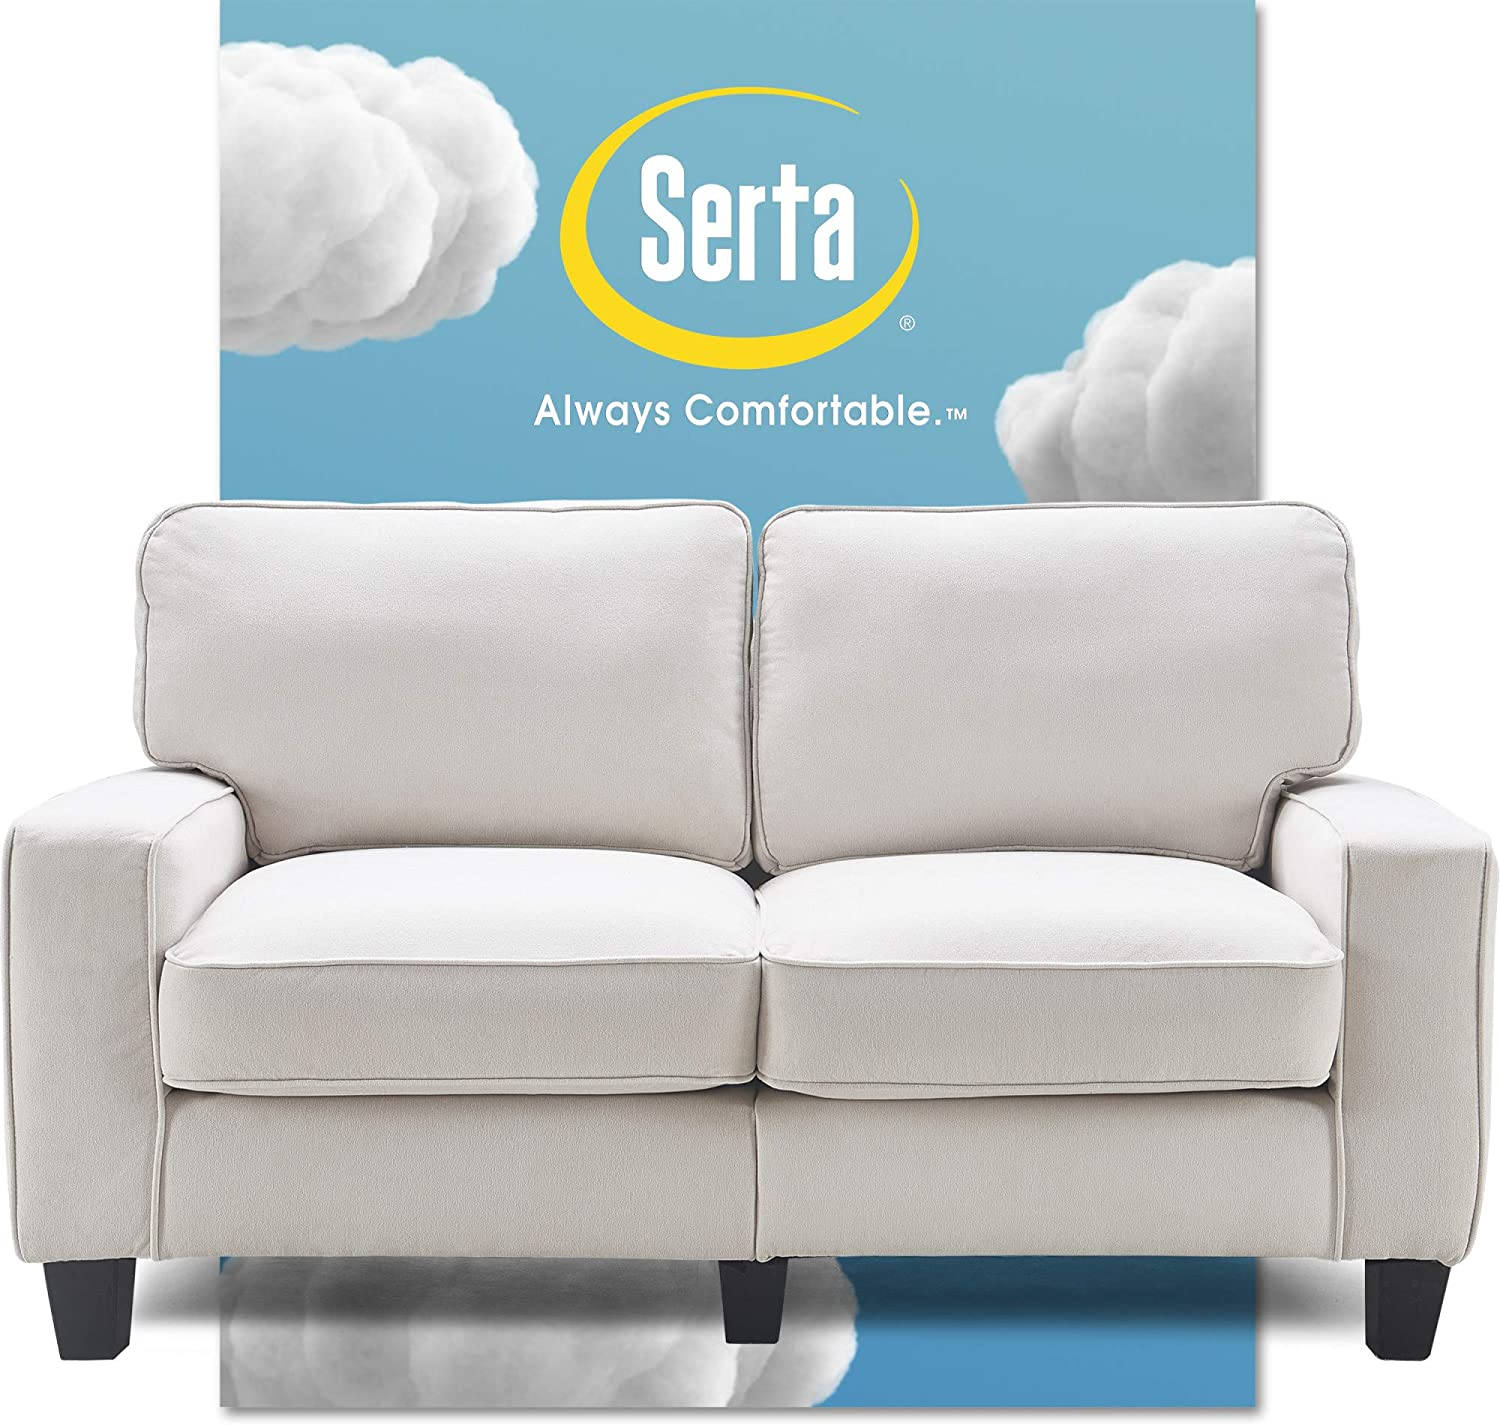 "Serta Palisades Upholstered Sofas for Living Room Modern Design Couch, Straight Arms, Soft Fabric Upholstery, Tool-Free Assembly, 61"" Loveseat, Cream"